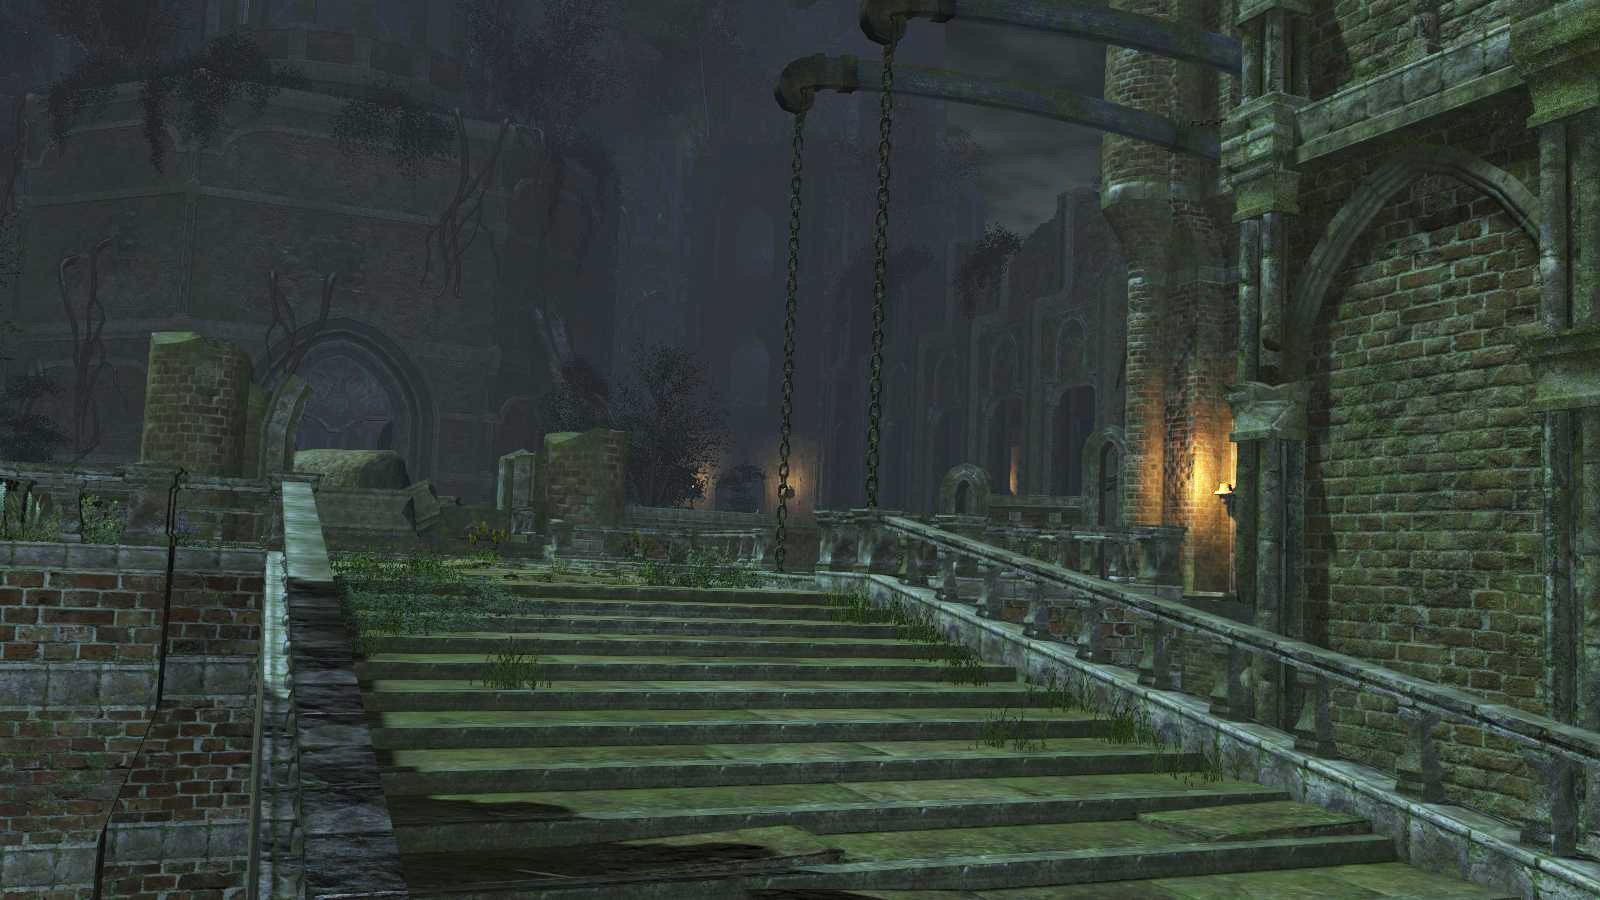 Final Fantasy XIV: A Realm Reborn - Beginners Guide to the Level 50